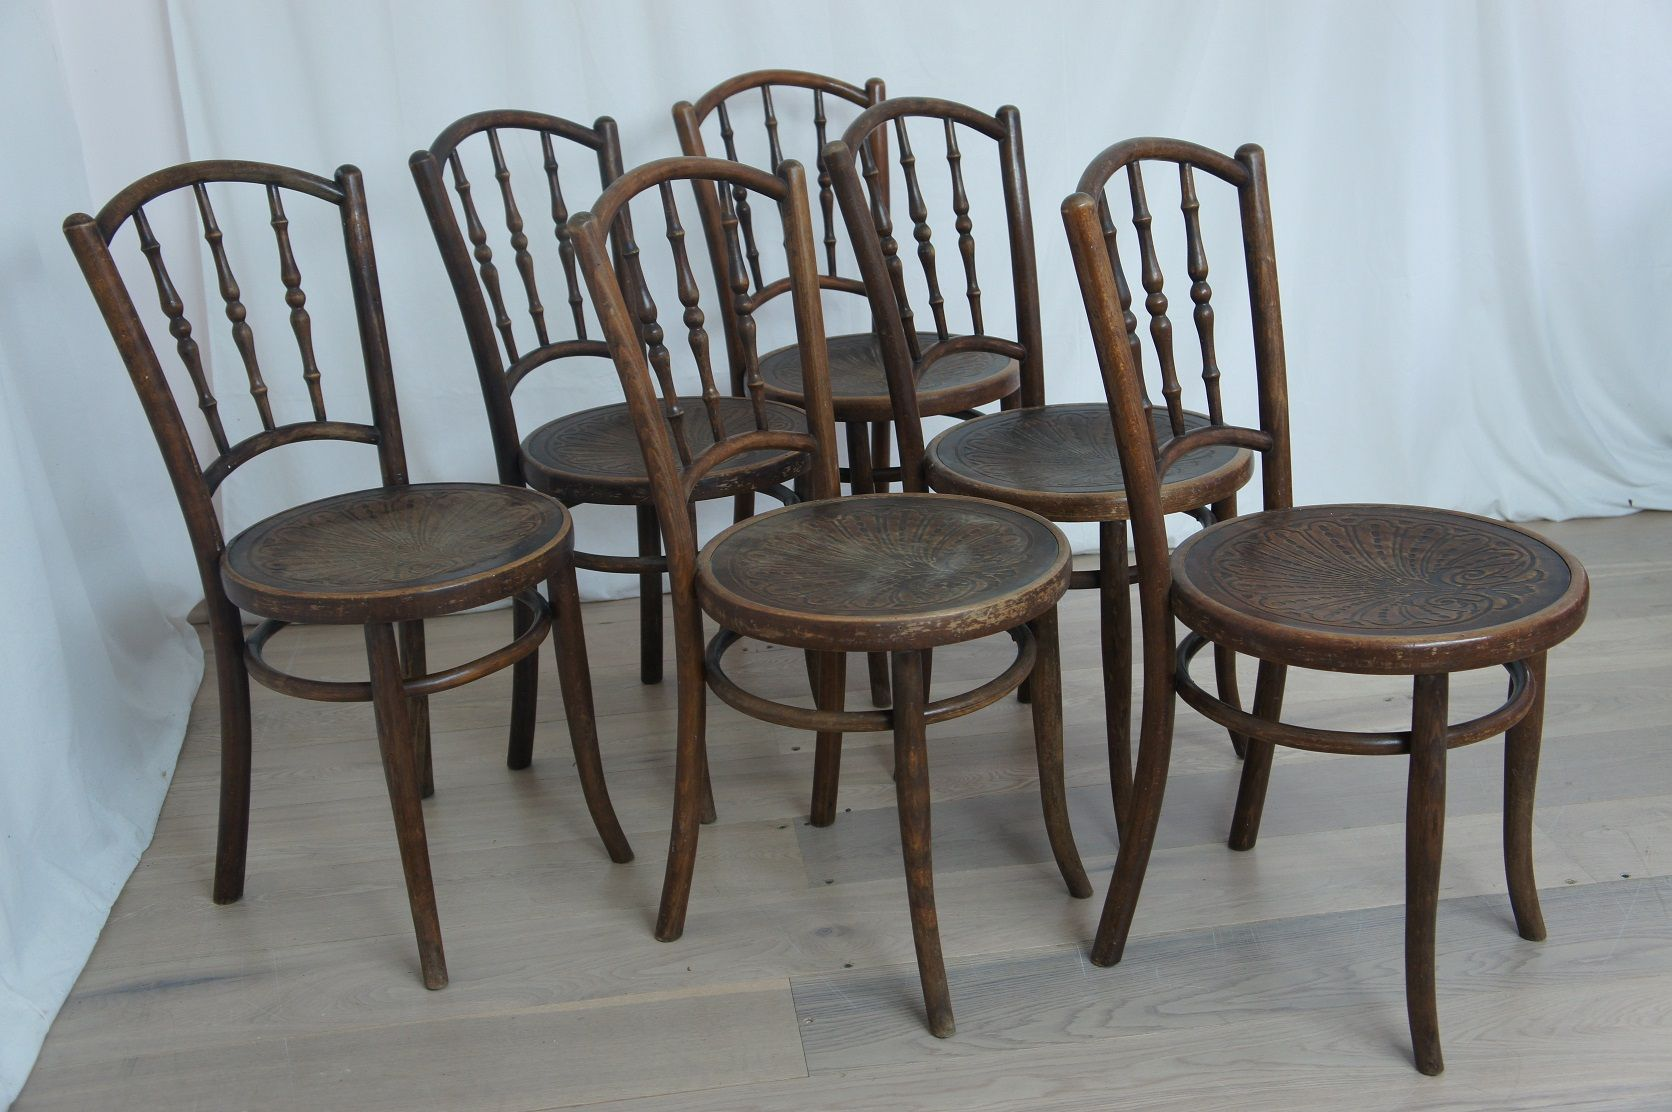 Set Of 6 Vintage French Bentwood Bistro Chairs 1900s Retro Furniture Bistro Chairs Vintage Chairs